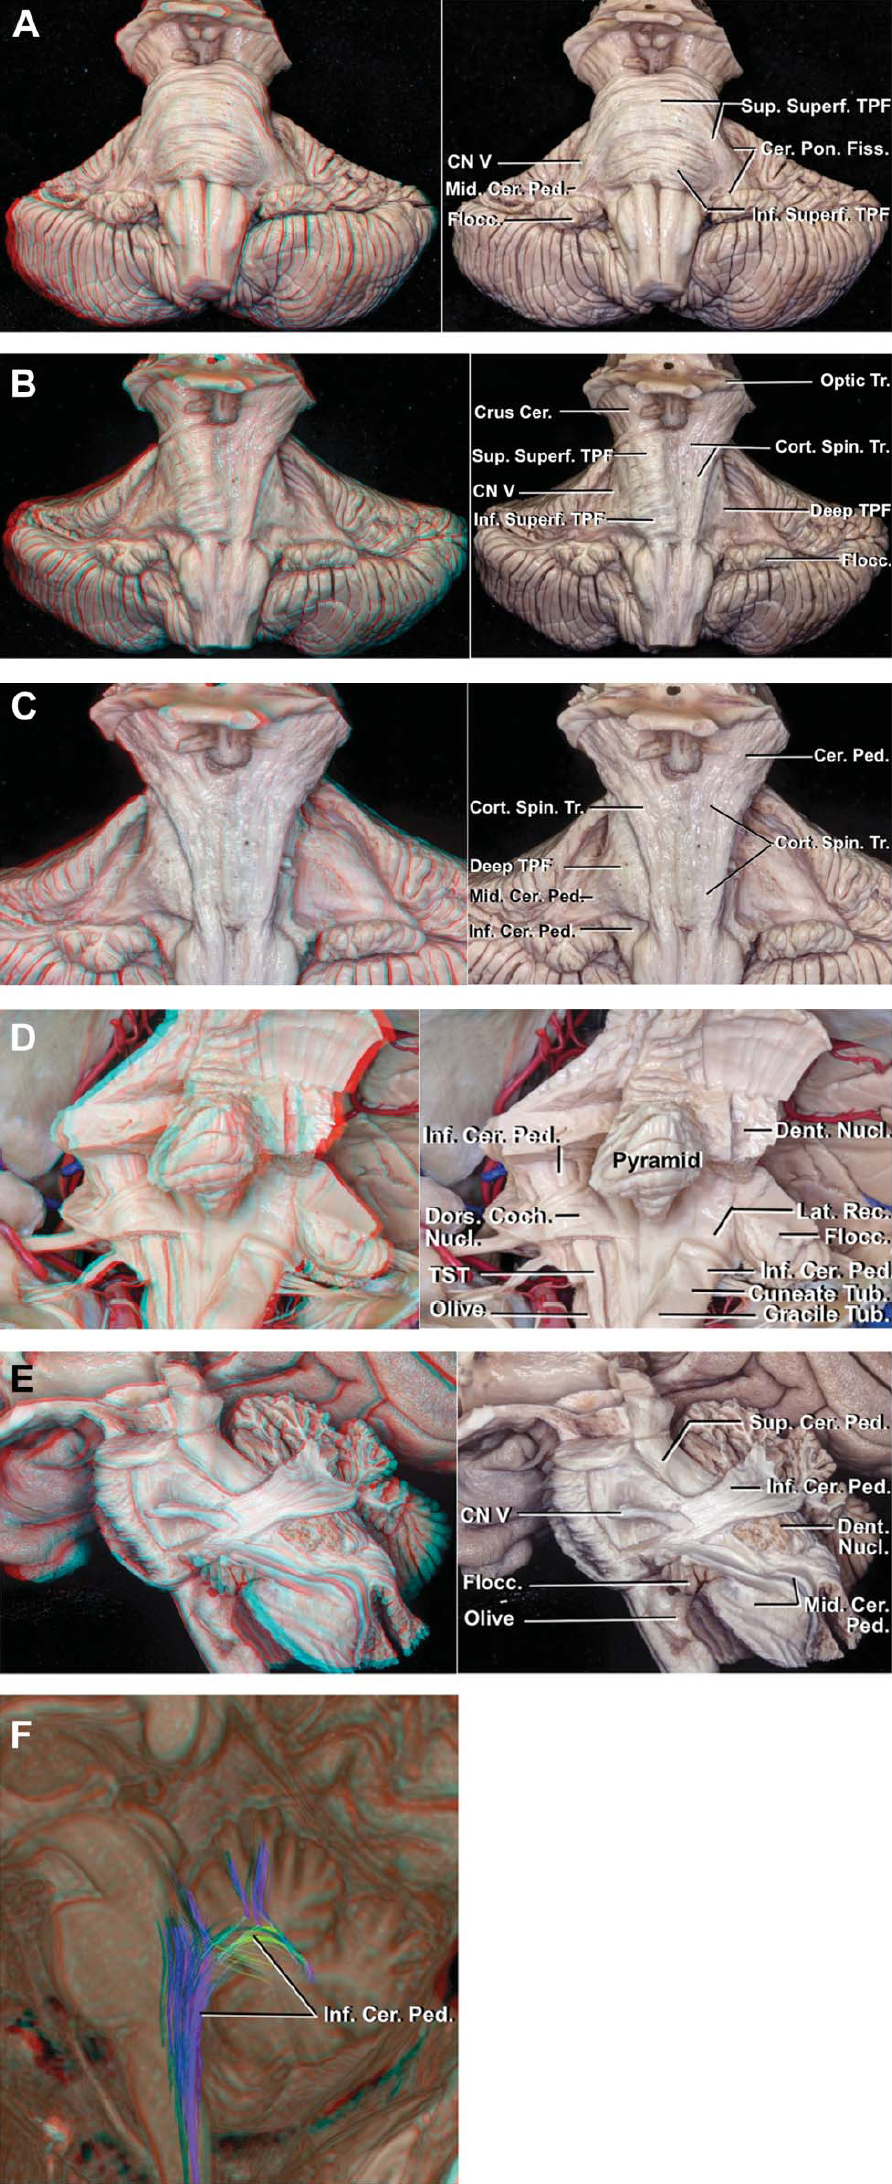 Figure 1 (A–F). Cerebellar peduncles. A, anterior view of the brainstem. A labeled 2-D illustration accompanies each 3-D illustration. The transverse pontine fibers collect near the junction of the trigeminal nerve with the anterolateral pons to form the middle cerebellar peduncle. The middle cerebellar peduncle passes dorsally and slightly caudally to enter the cerebellum at the level of the angular cleft between the cerebellum and pons called the cerebellopontine fissure. The transverse pontine fibers located anterior to the corticospinal tract, referred to as superficial transverse pontine fibers, divide into 2 parts: those situated rostral to the trigeminal nerve are the superior superficial transverse pontine fibers and those situated caudal to the trigeminal nerve are the inferior superficial transverse pontine fibers. B, the left superficial transverse pontine fibers have been removed to expose the deep transverse pontine fibers. The superficial superior and inferior transverse pontine fibers are exposed anterior to the corticospinal tract in the right half of the pons and the deep transverse pontine fibers are exposed posterior to the corticospinal tract in the left half of the pons. C, all the superficial transverse pontine fibers on both sides have been removed. The middle cerebellar peduncle is situated lateral to the inferior cerebellar peduncle. D, posterior view of the inferior cerebellar peduncle in another specimen. Part of the cerebellum and the cuneate and gracile fasciculi in the left dorsal medulla have been removed. The inferior cerebellar peduncle ascends in the dorsolateral medulla, dorsal to the olive, lateral to the gracile and cuneate tubercles, and dorsolateral to the trigeminal spinal tract. At the level of the lateral recess, the inferior cerebellar peduncle ascends deep to the stria medullaris and dorsal cochlear nucleus and turns dorsally to reach the cerebellum. It is crossed ventromedially by the intrapontine segment of the facial ne